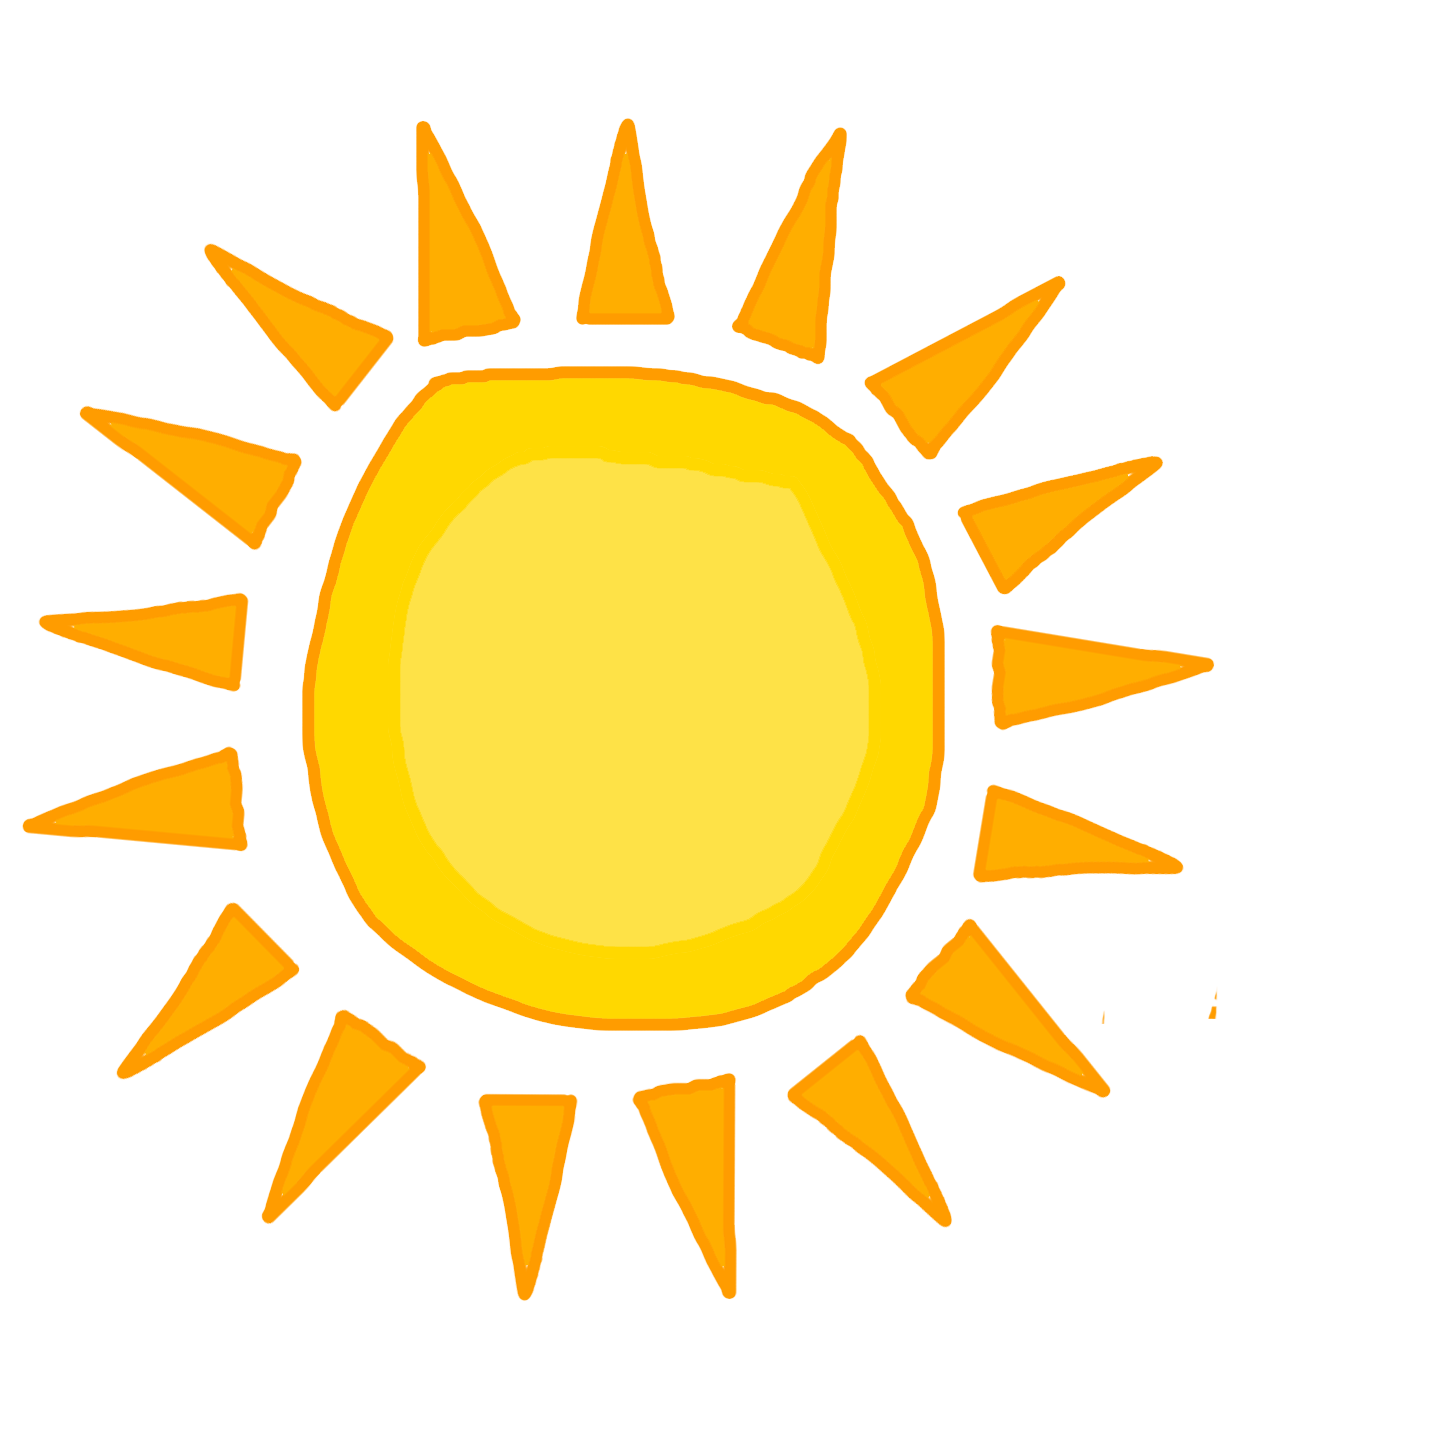 Sun PNG images, real sun PNG free images download.